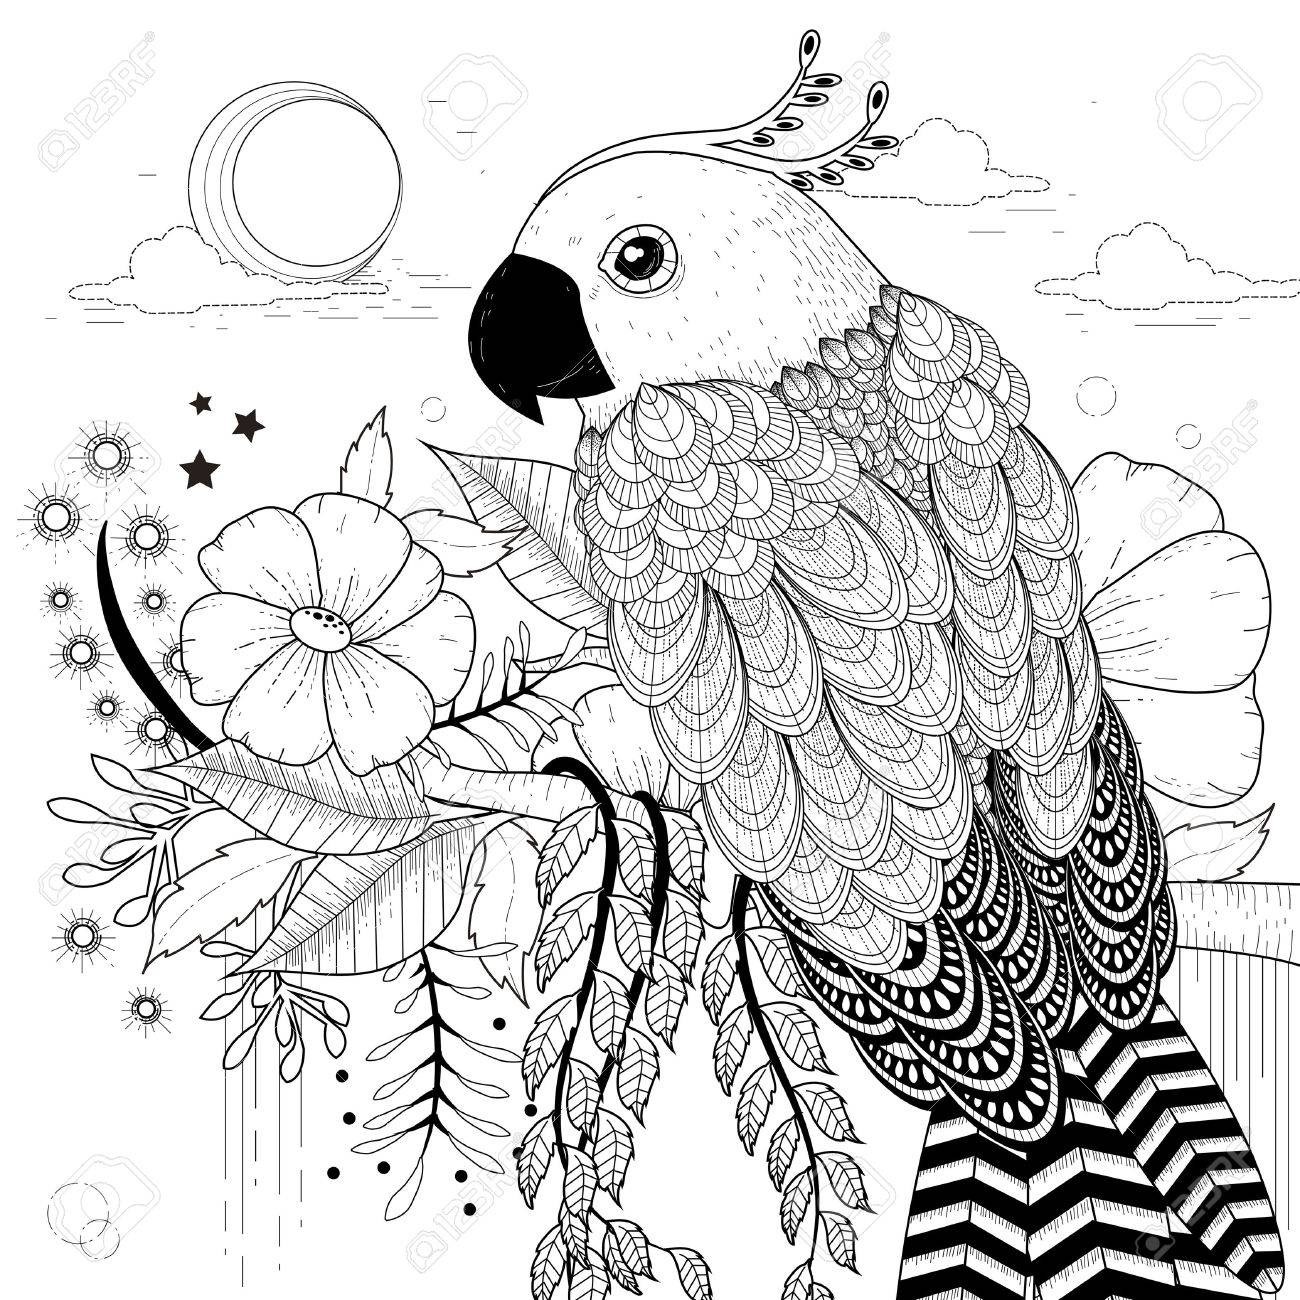 Lovely Parrot Coloring Page In Exquisite Style Royalty Free Cliparts ...